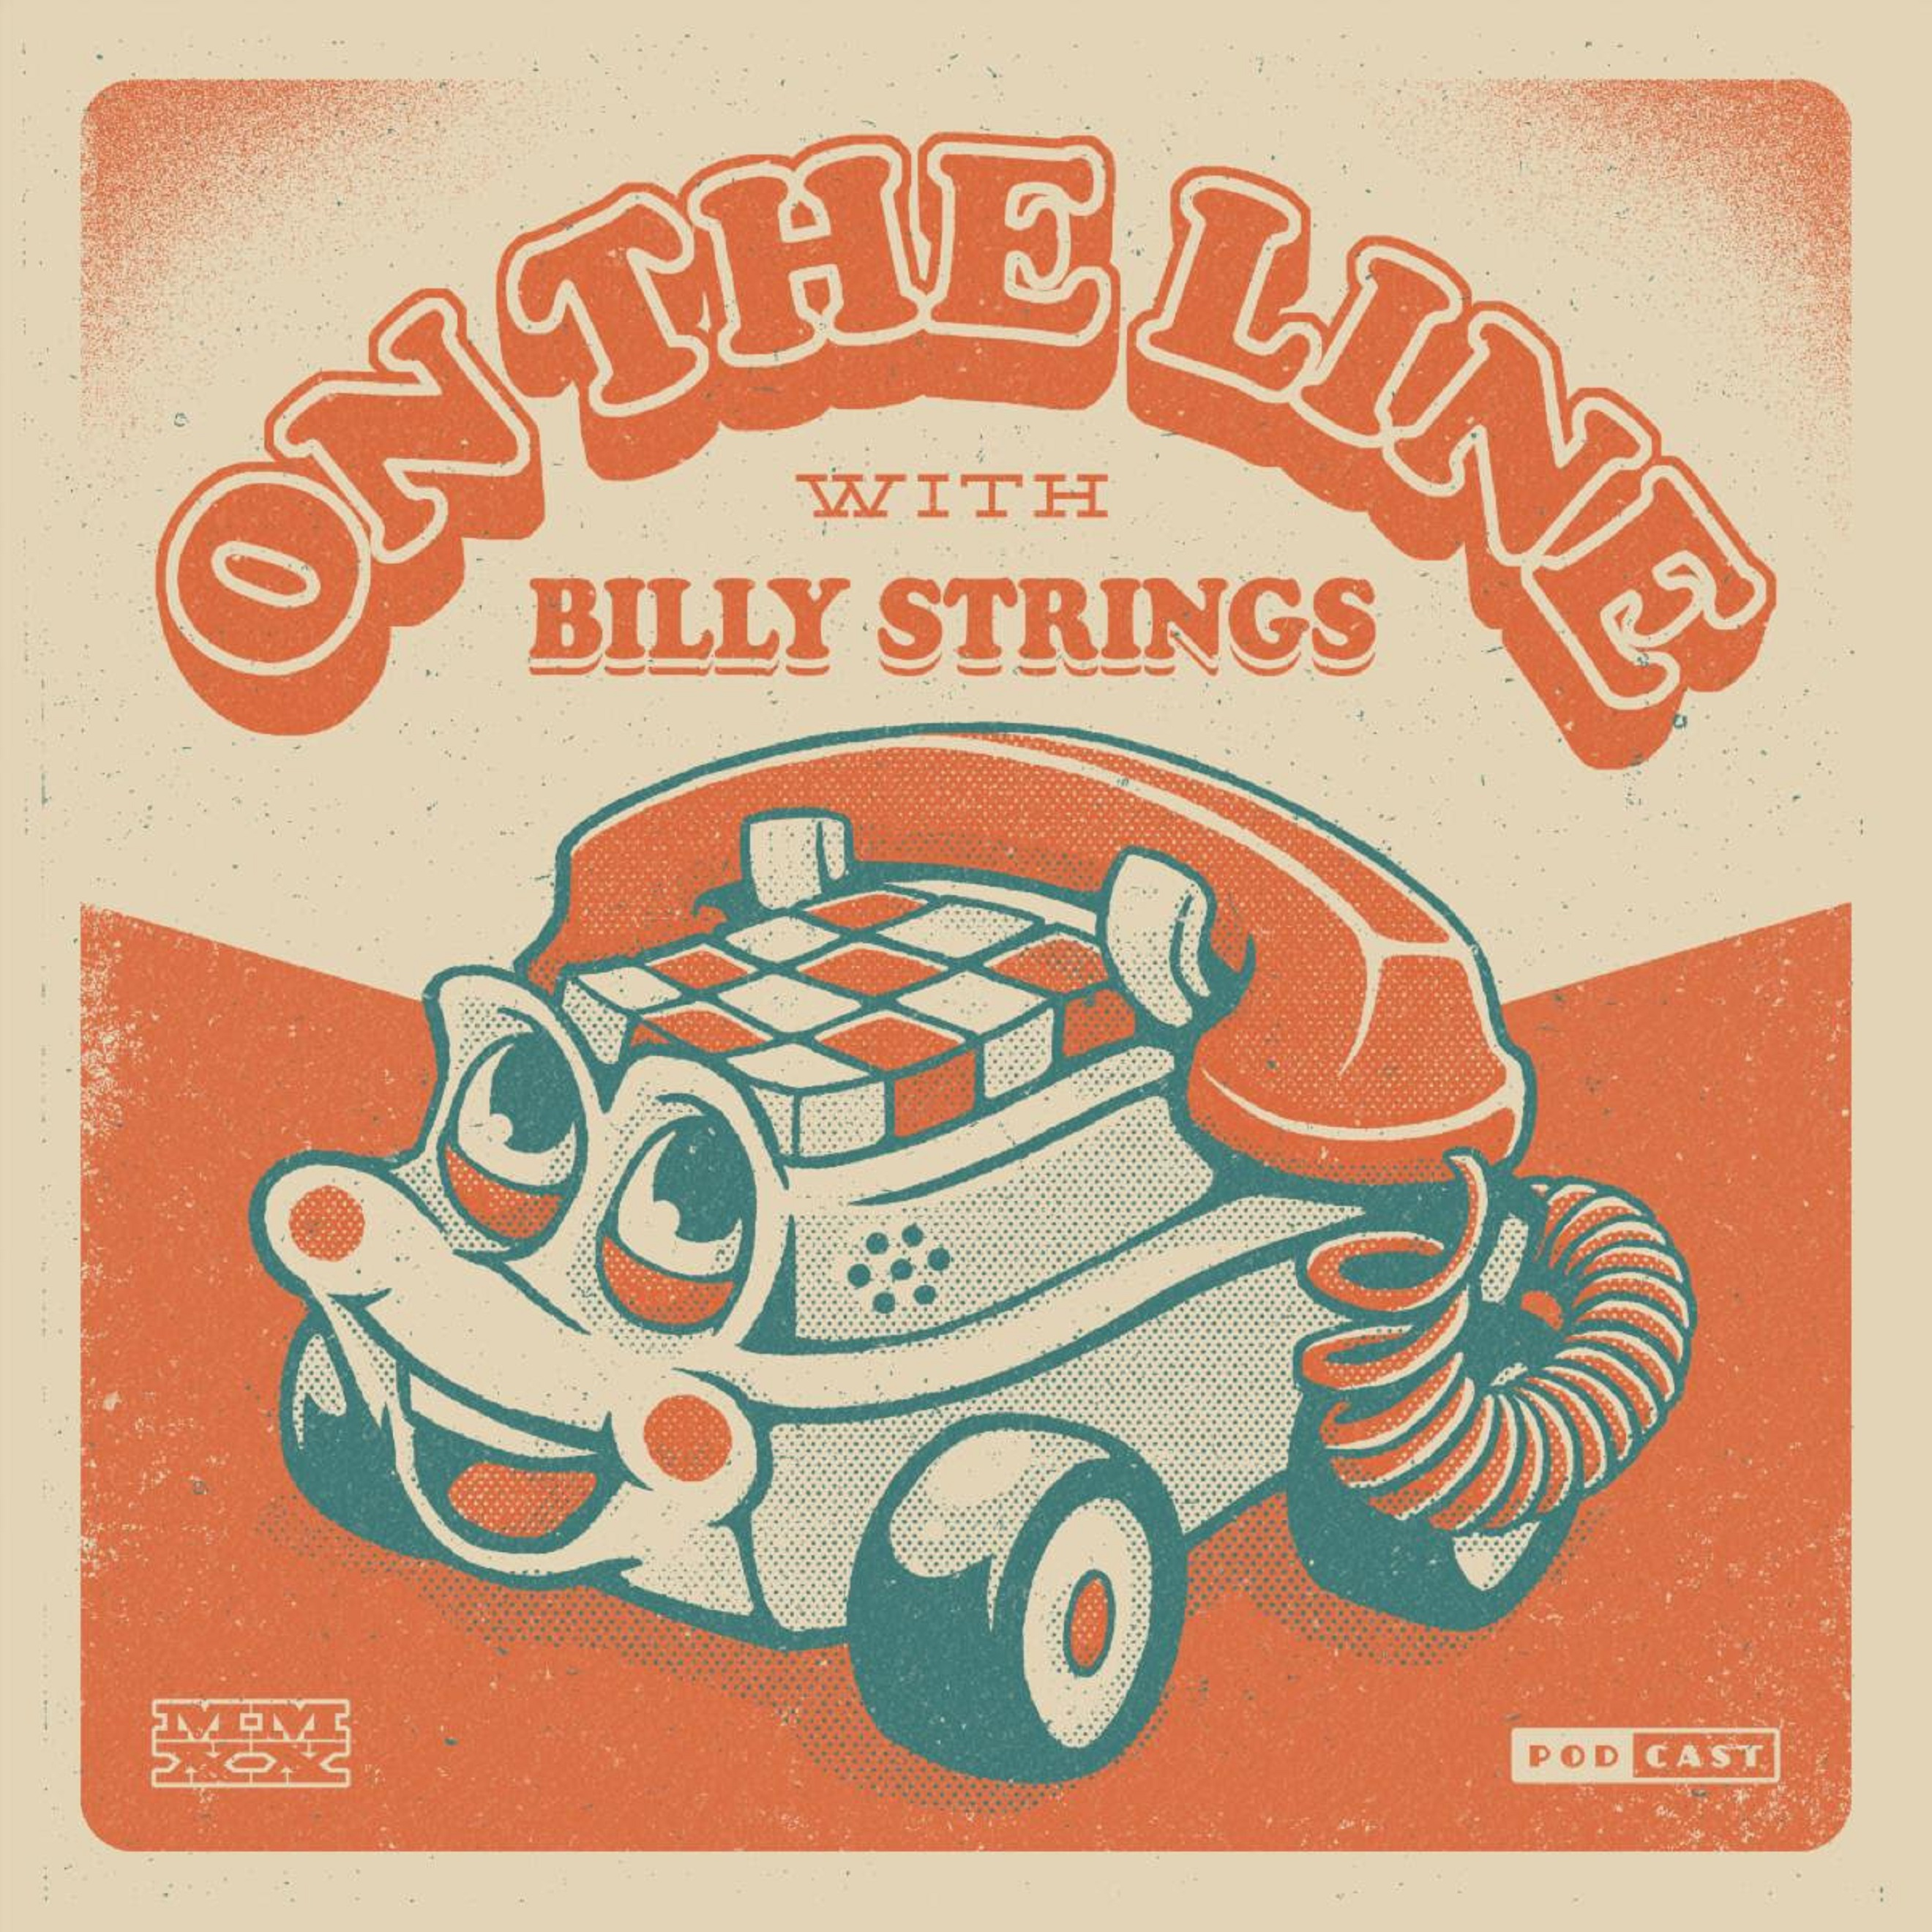 Billy Strings invites fans to listen in on his conversations